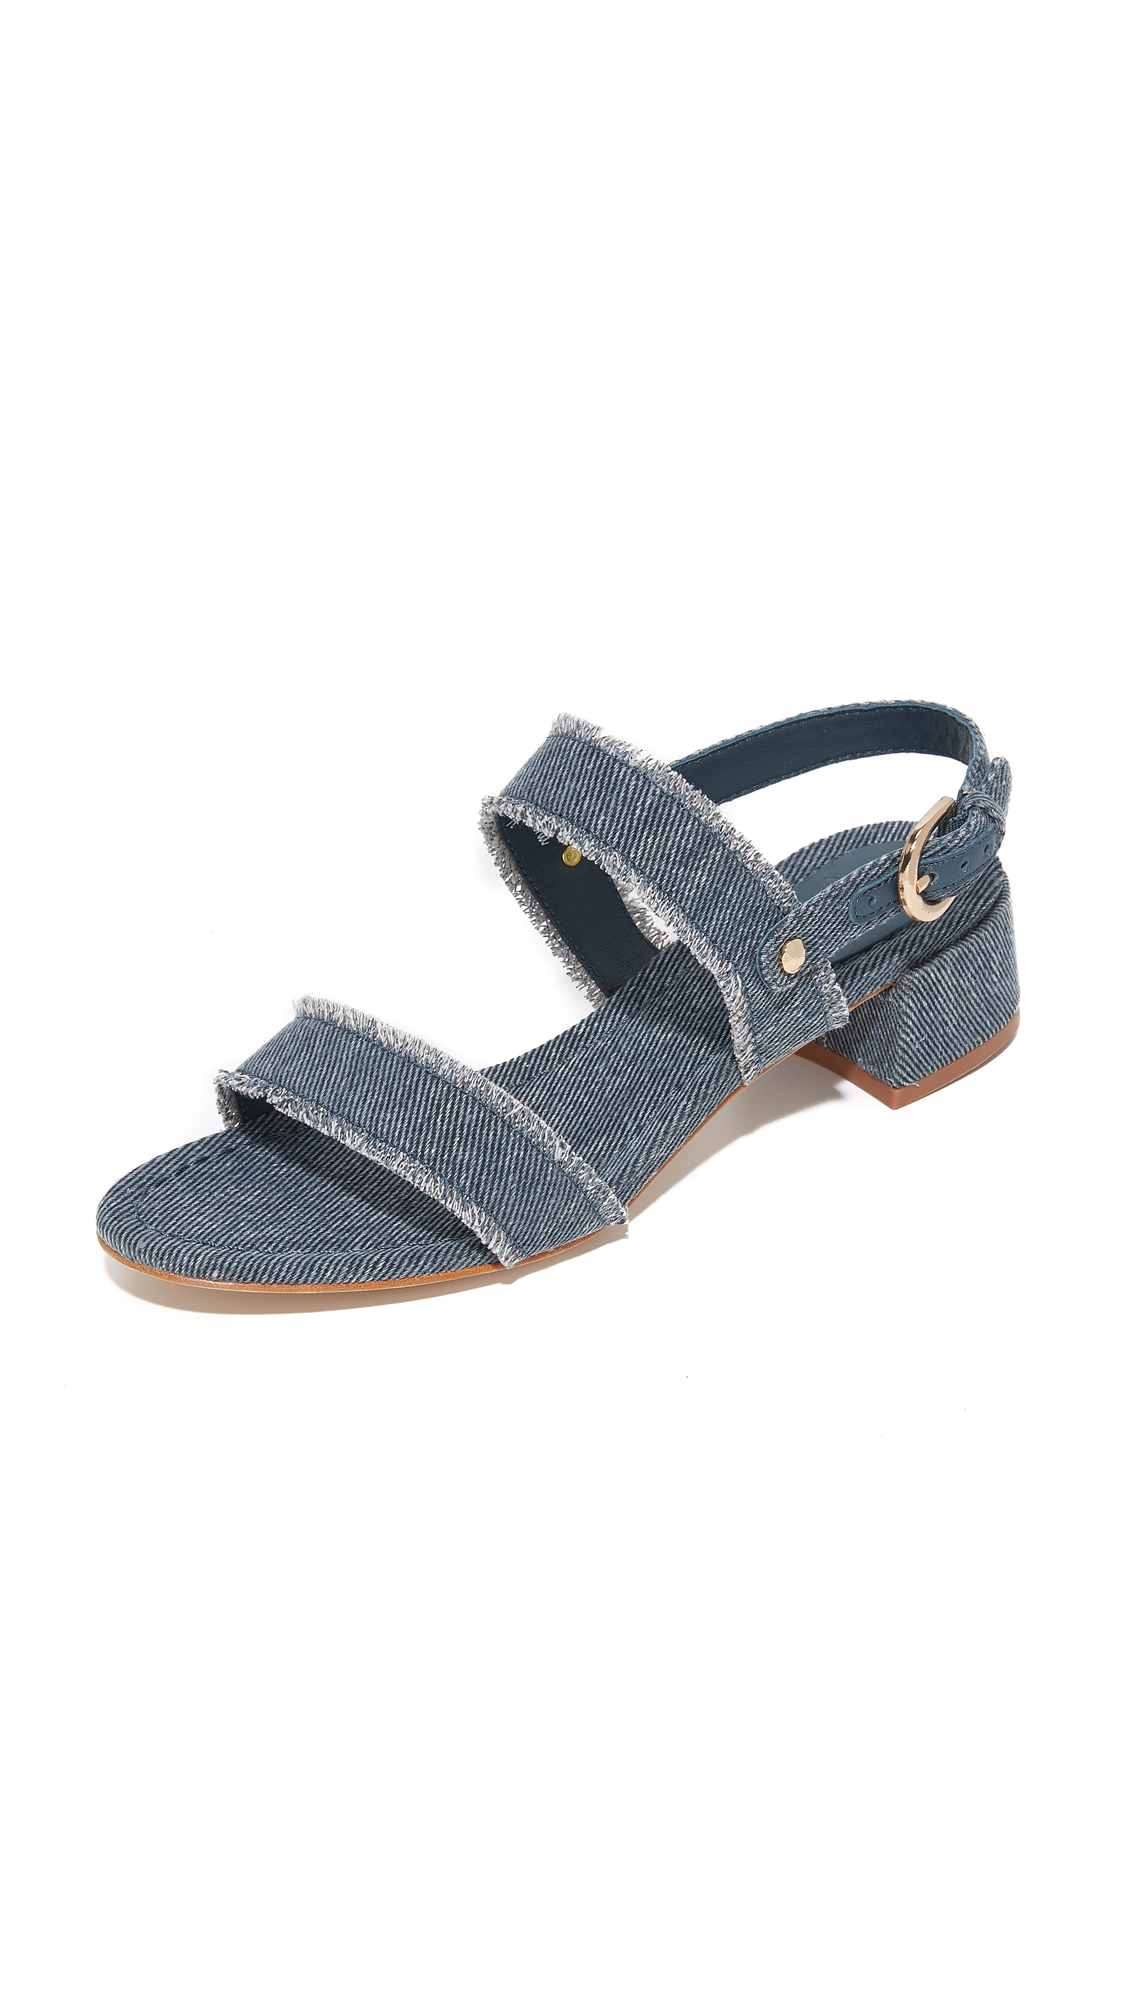 Joie Rach Ciy Sandals - Dark Denim